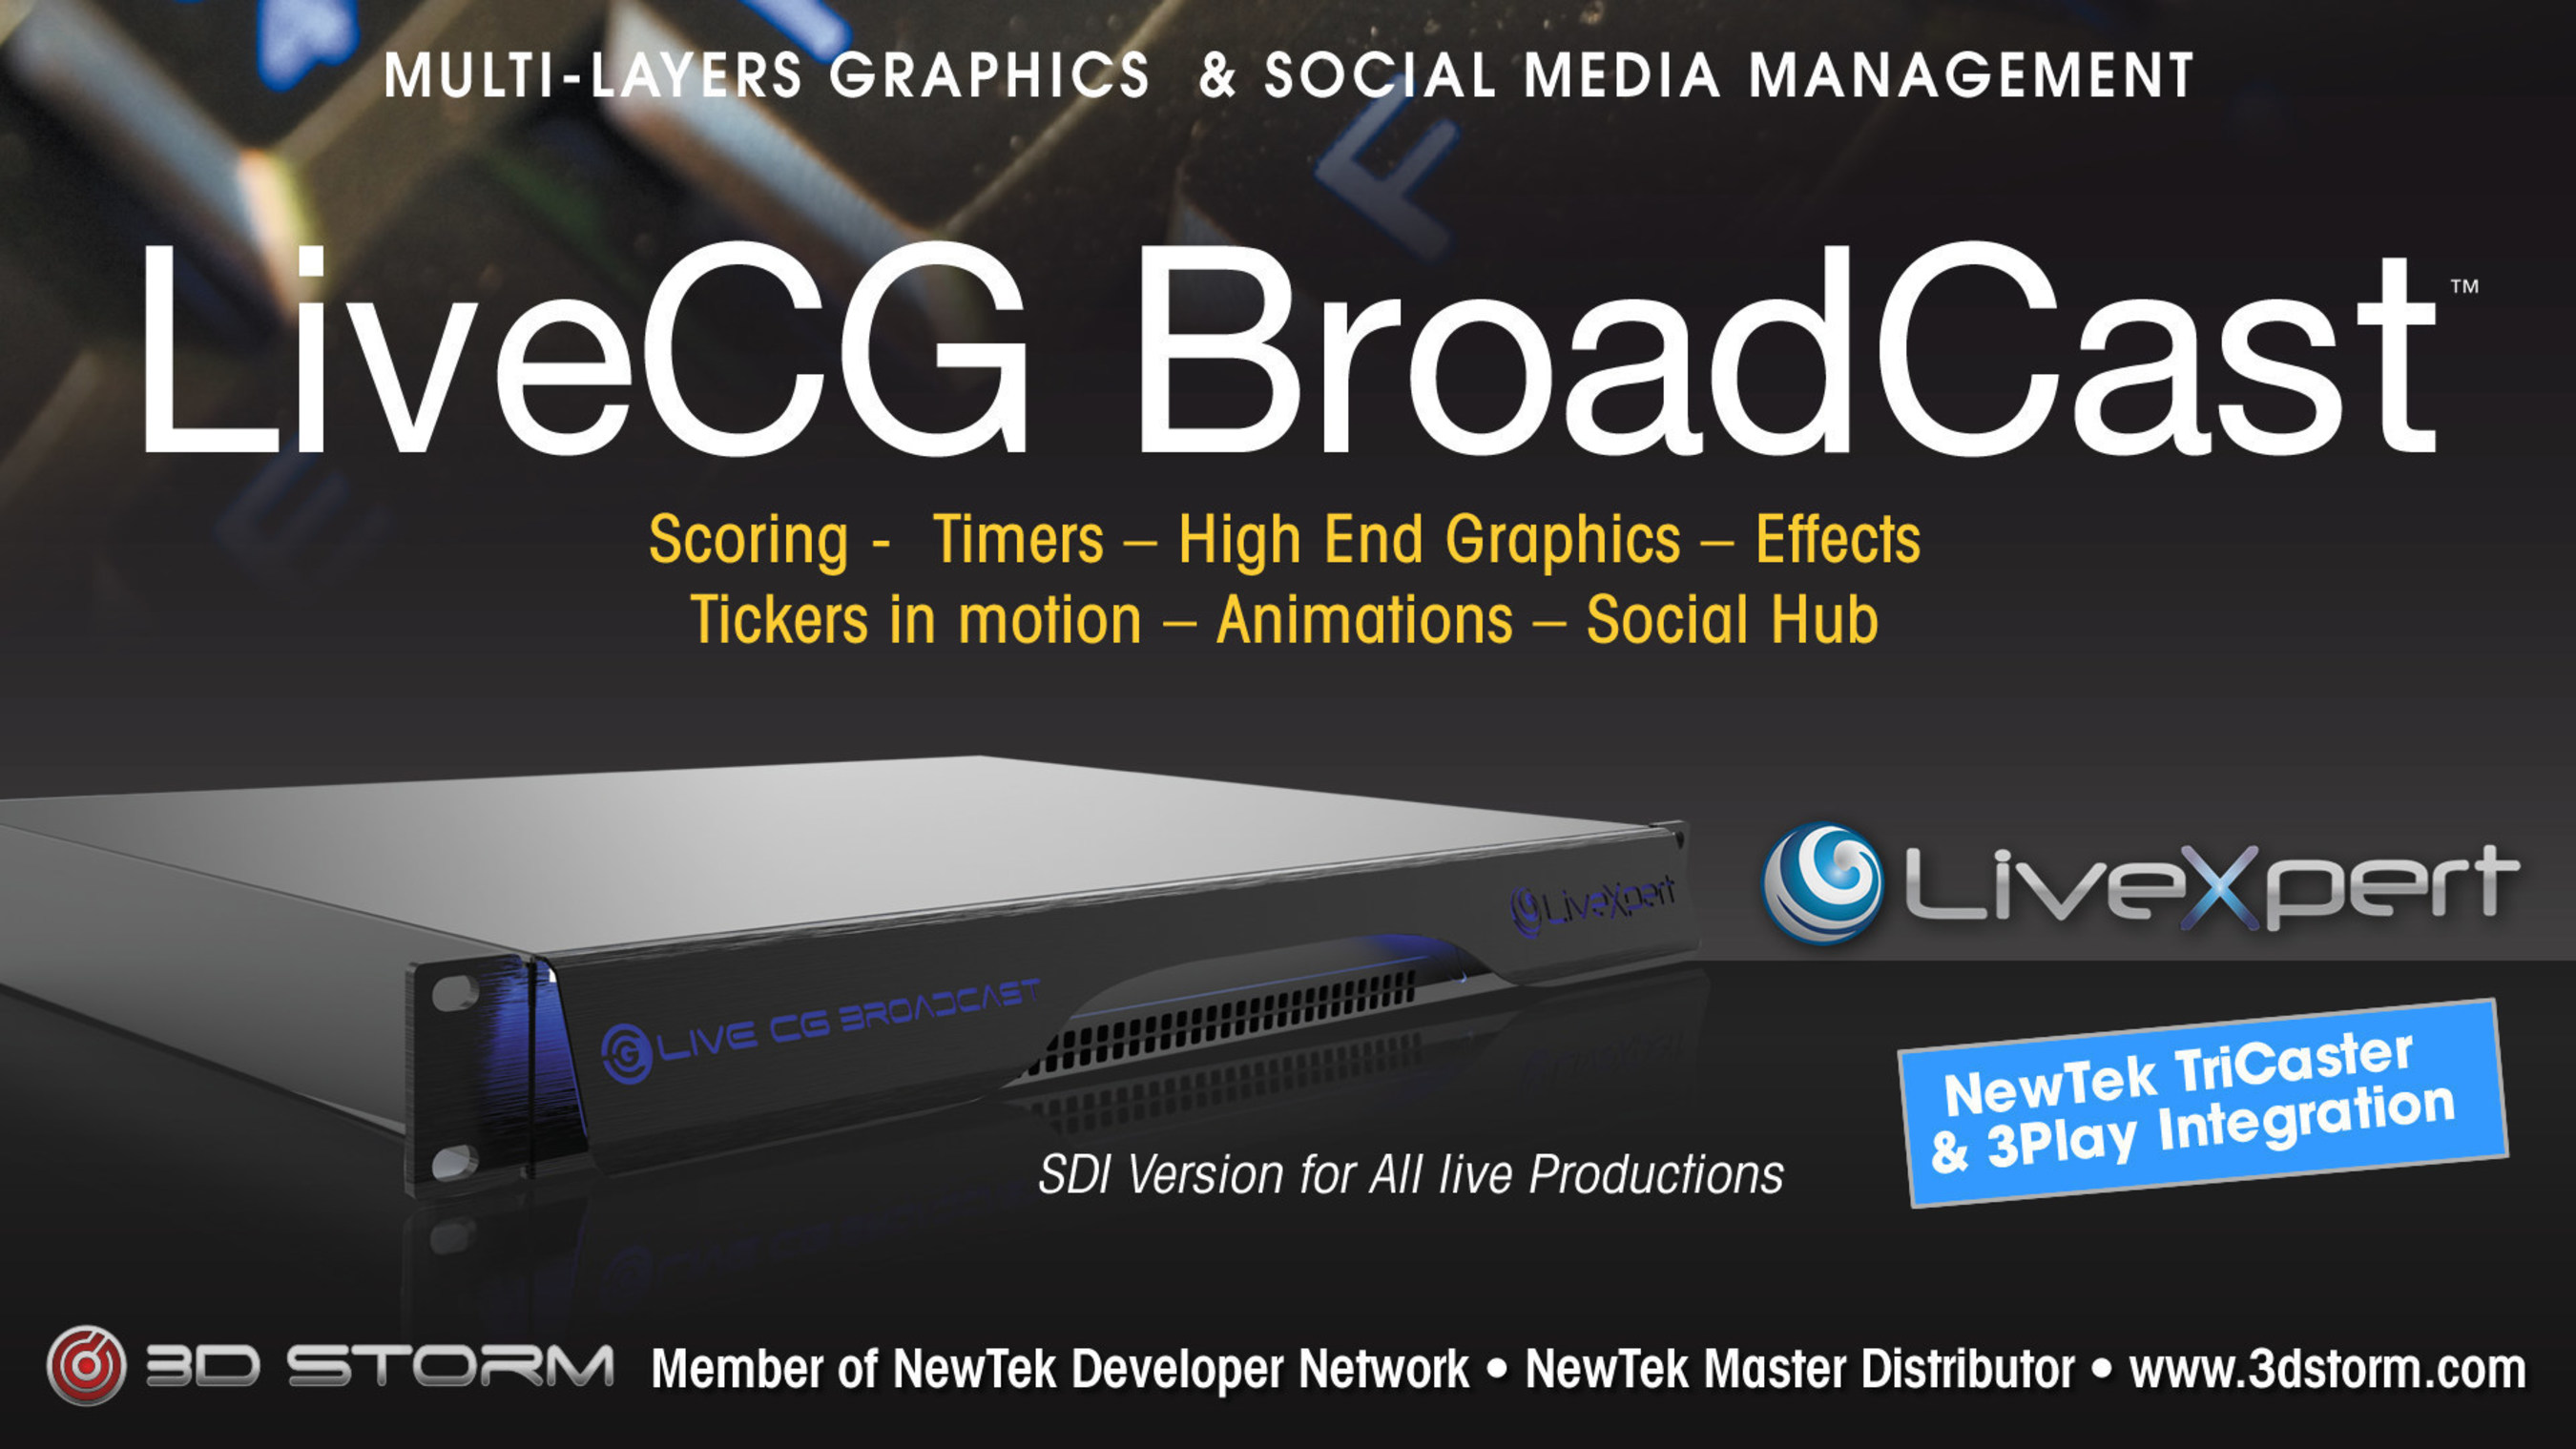 LiveCG Broadcast New Features Social Networks, Integration & Publication within Live productions